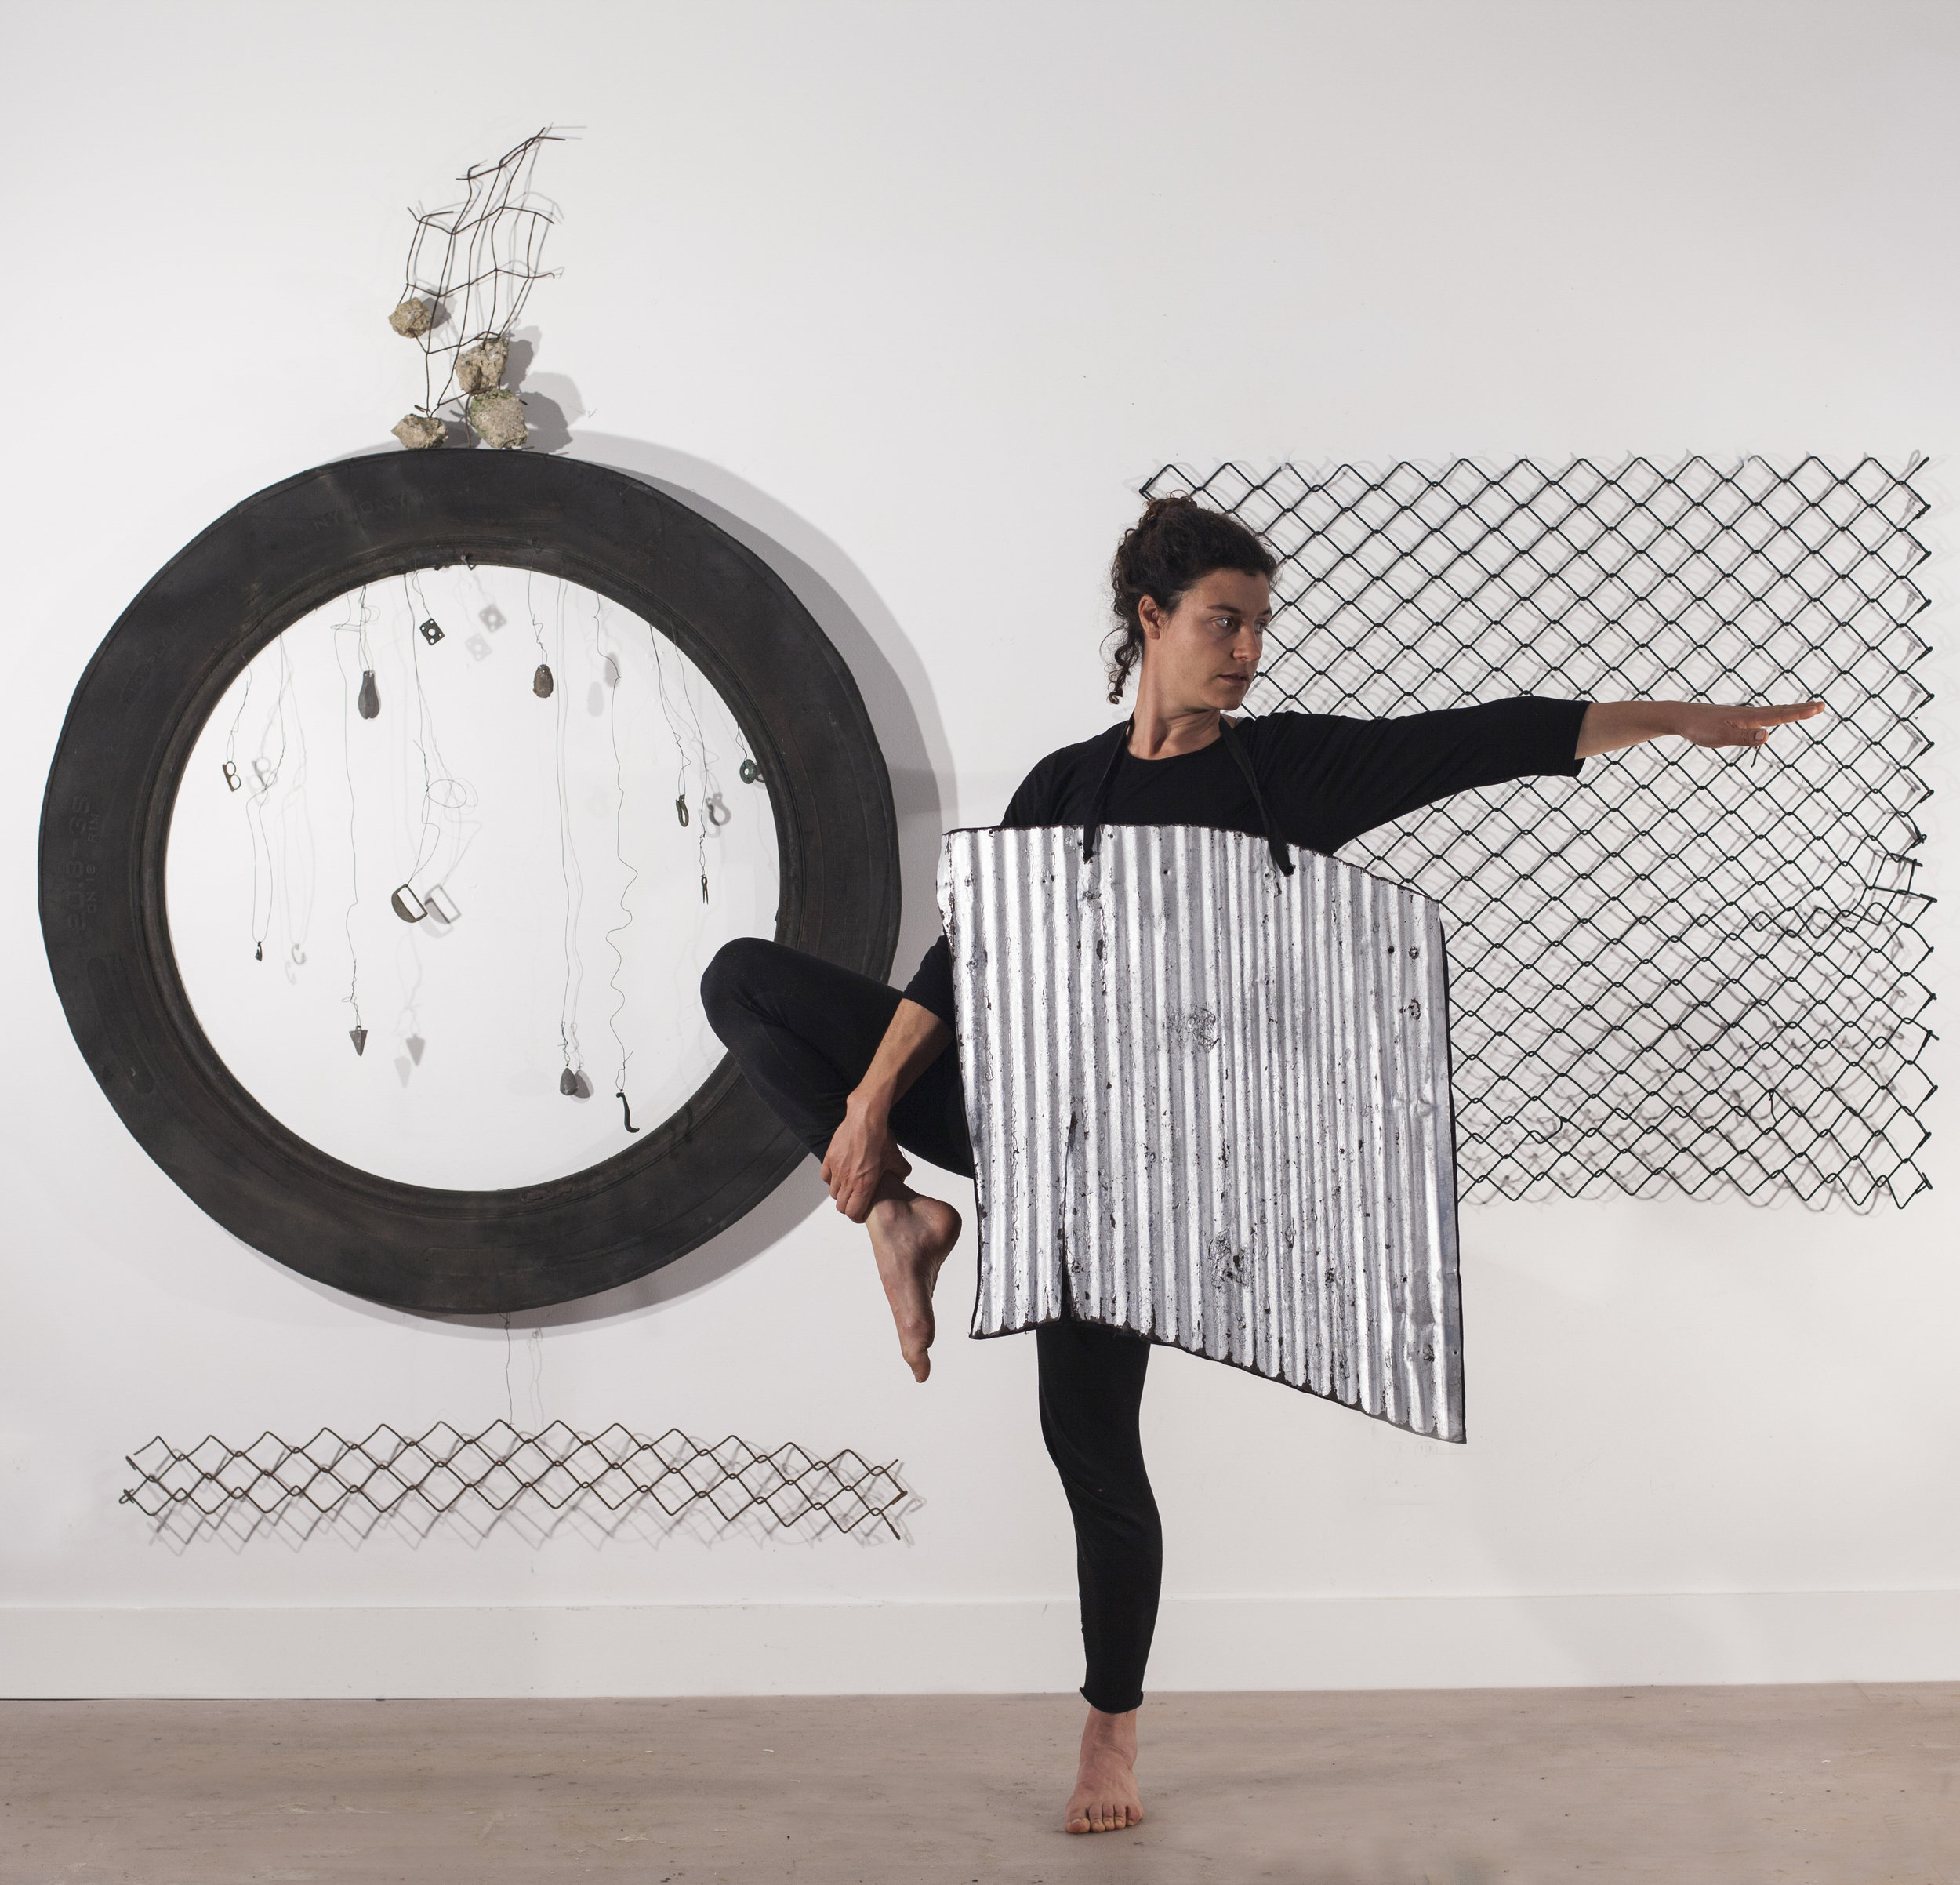 Installations and Videos➞ -